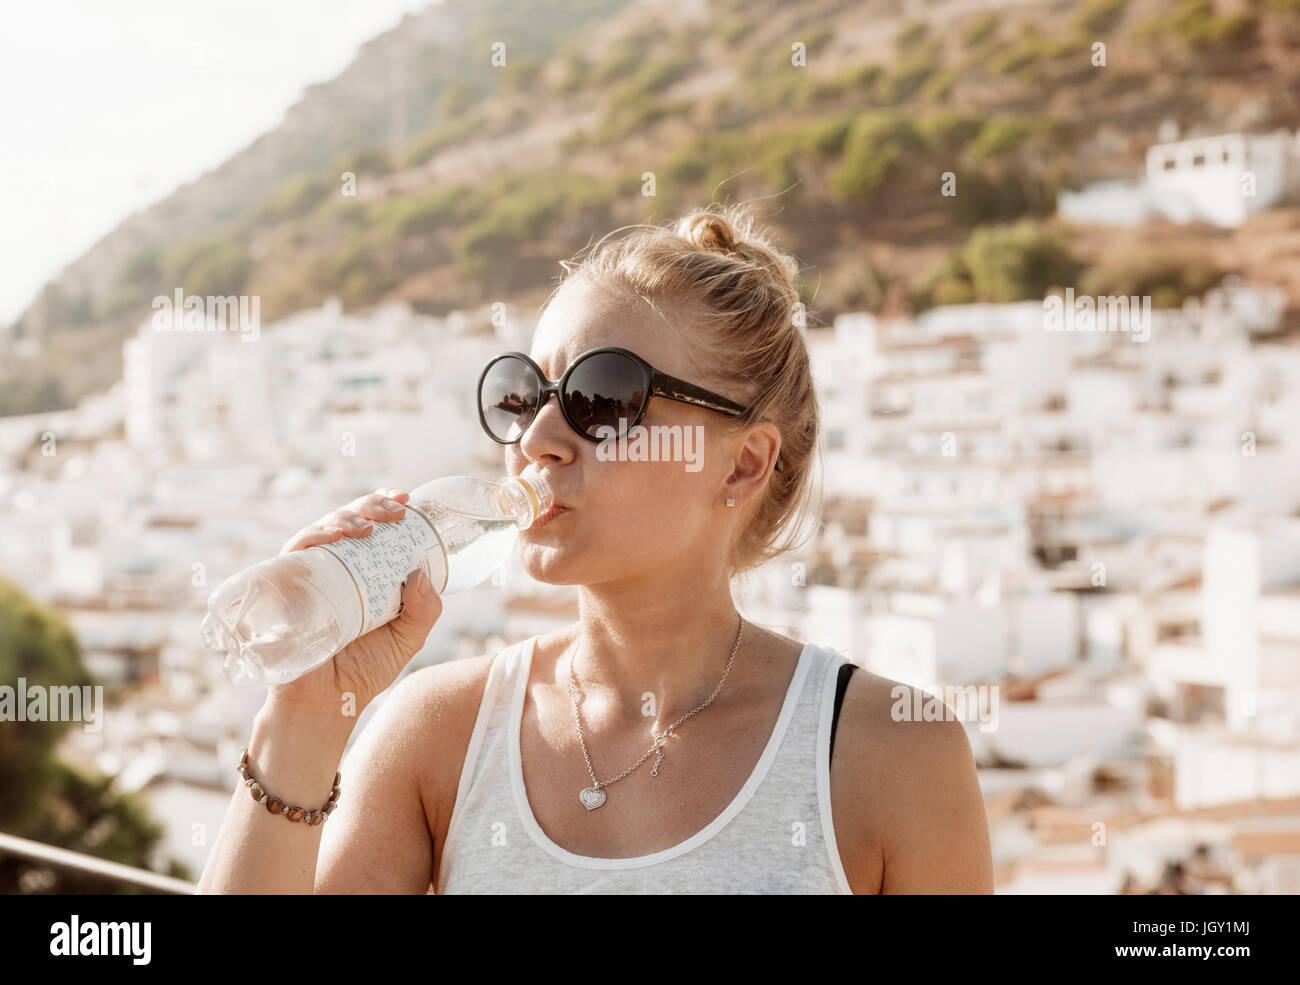 Woman drinking water on viewing platform overlooking town, Mijas Pueblo, Andalucia, Spain - Stock Image